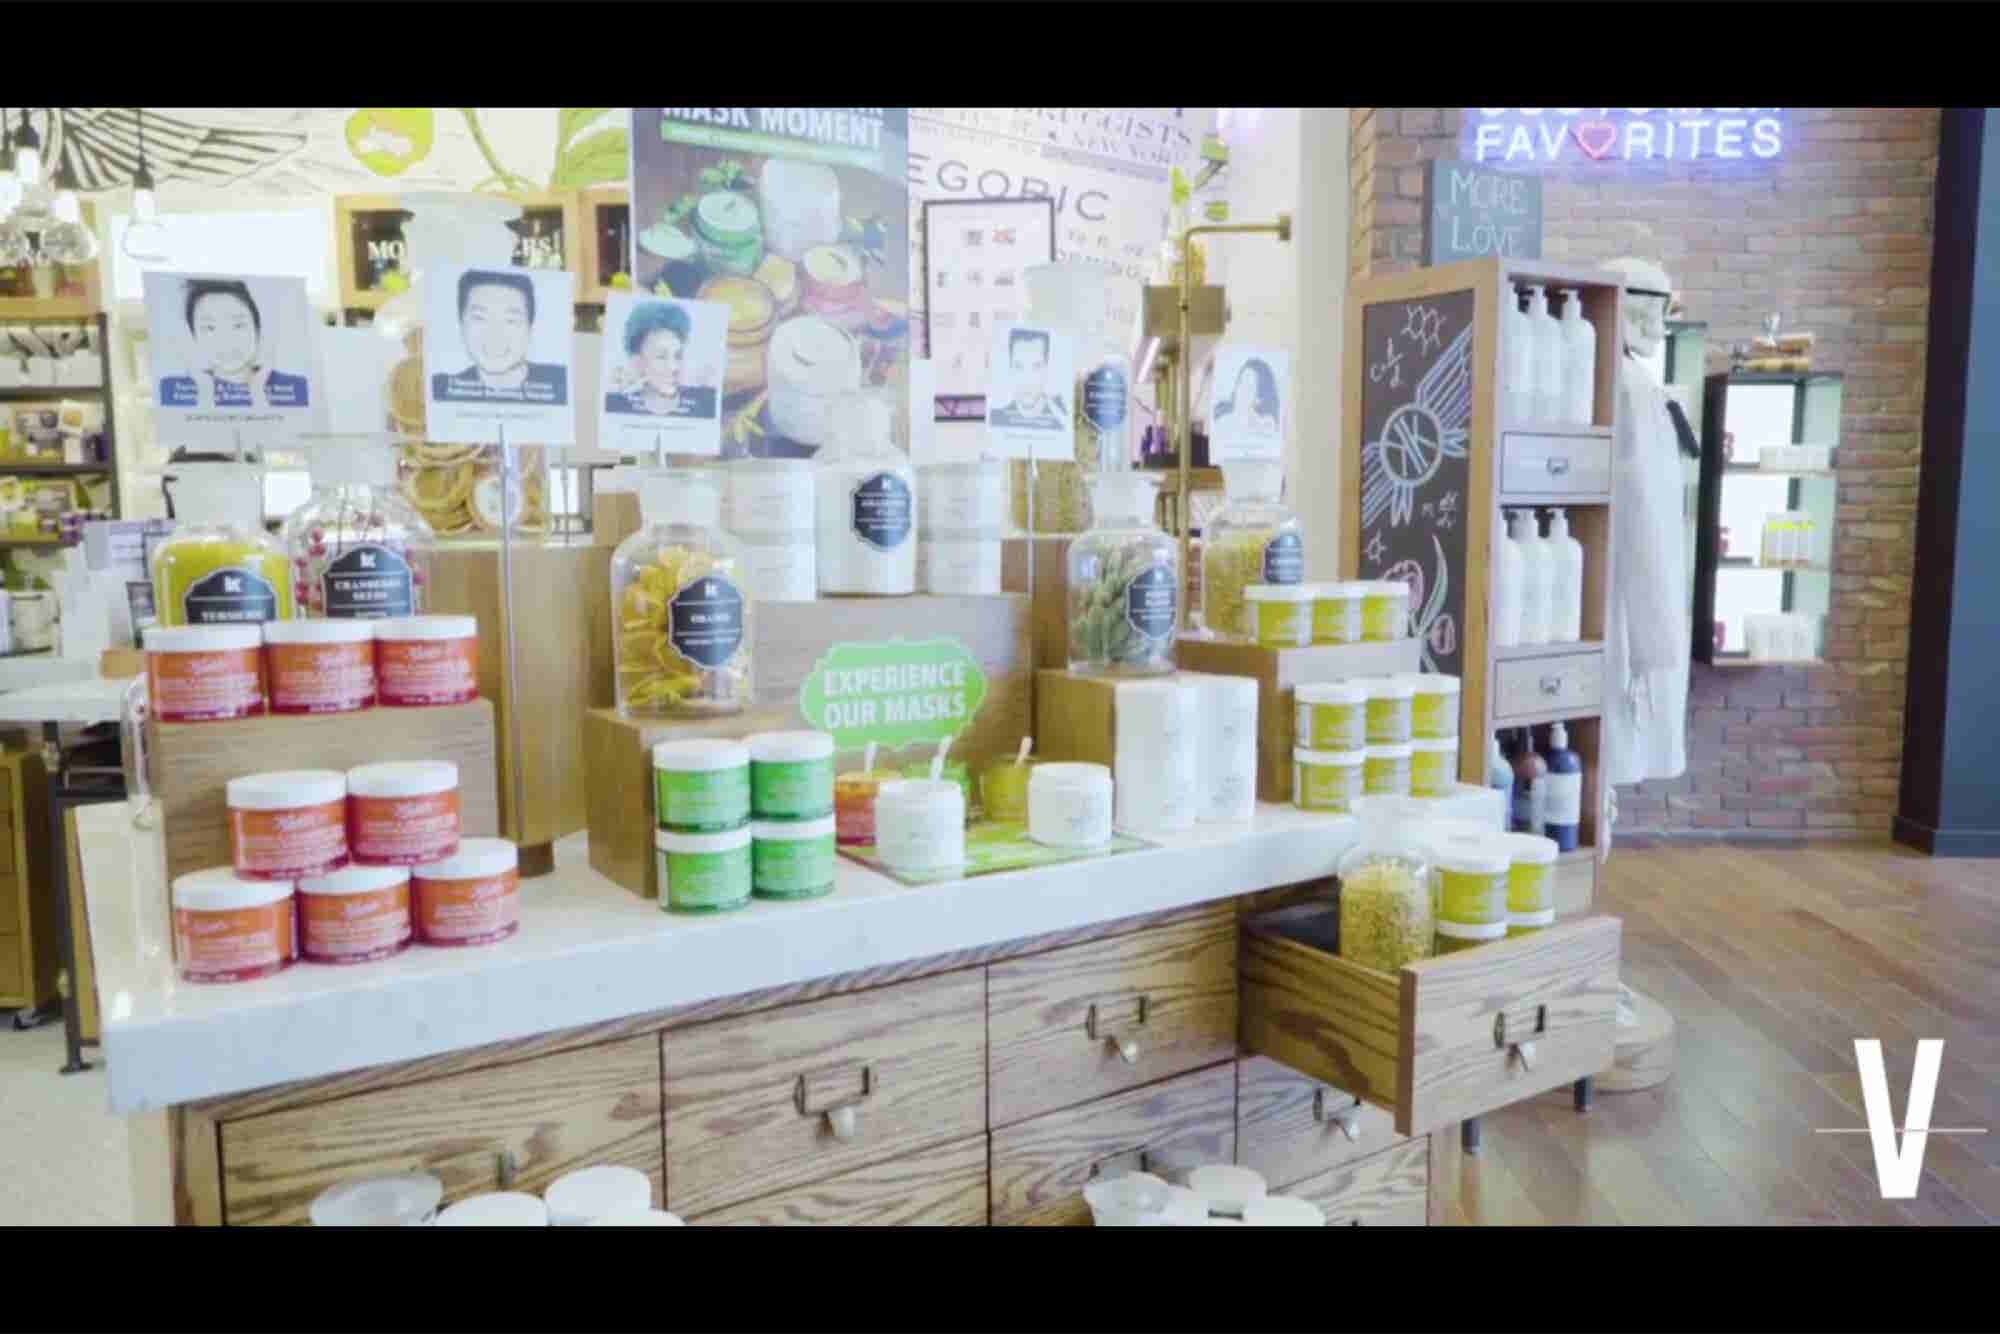 This Skincare Business Has Been Around Since 1851. What's the Secret?